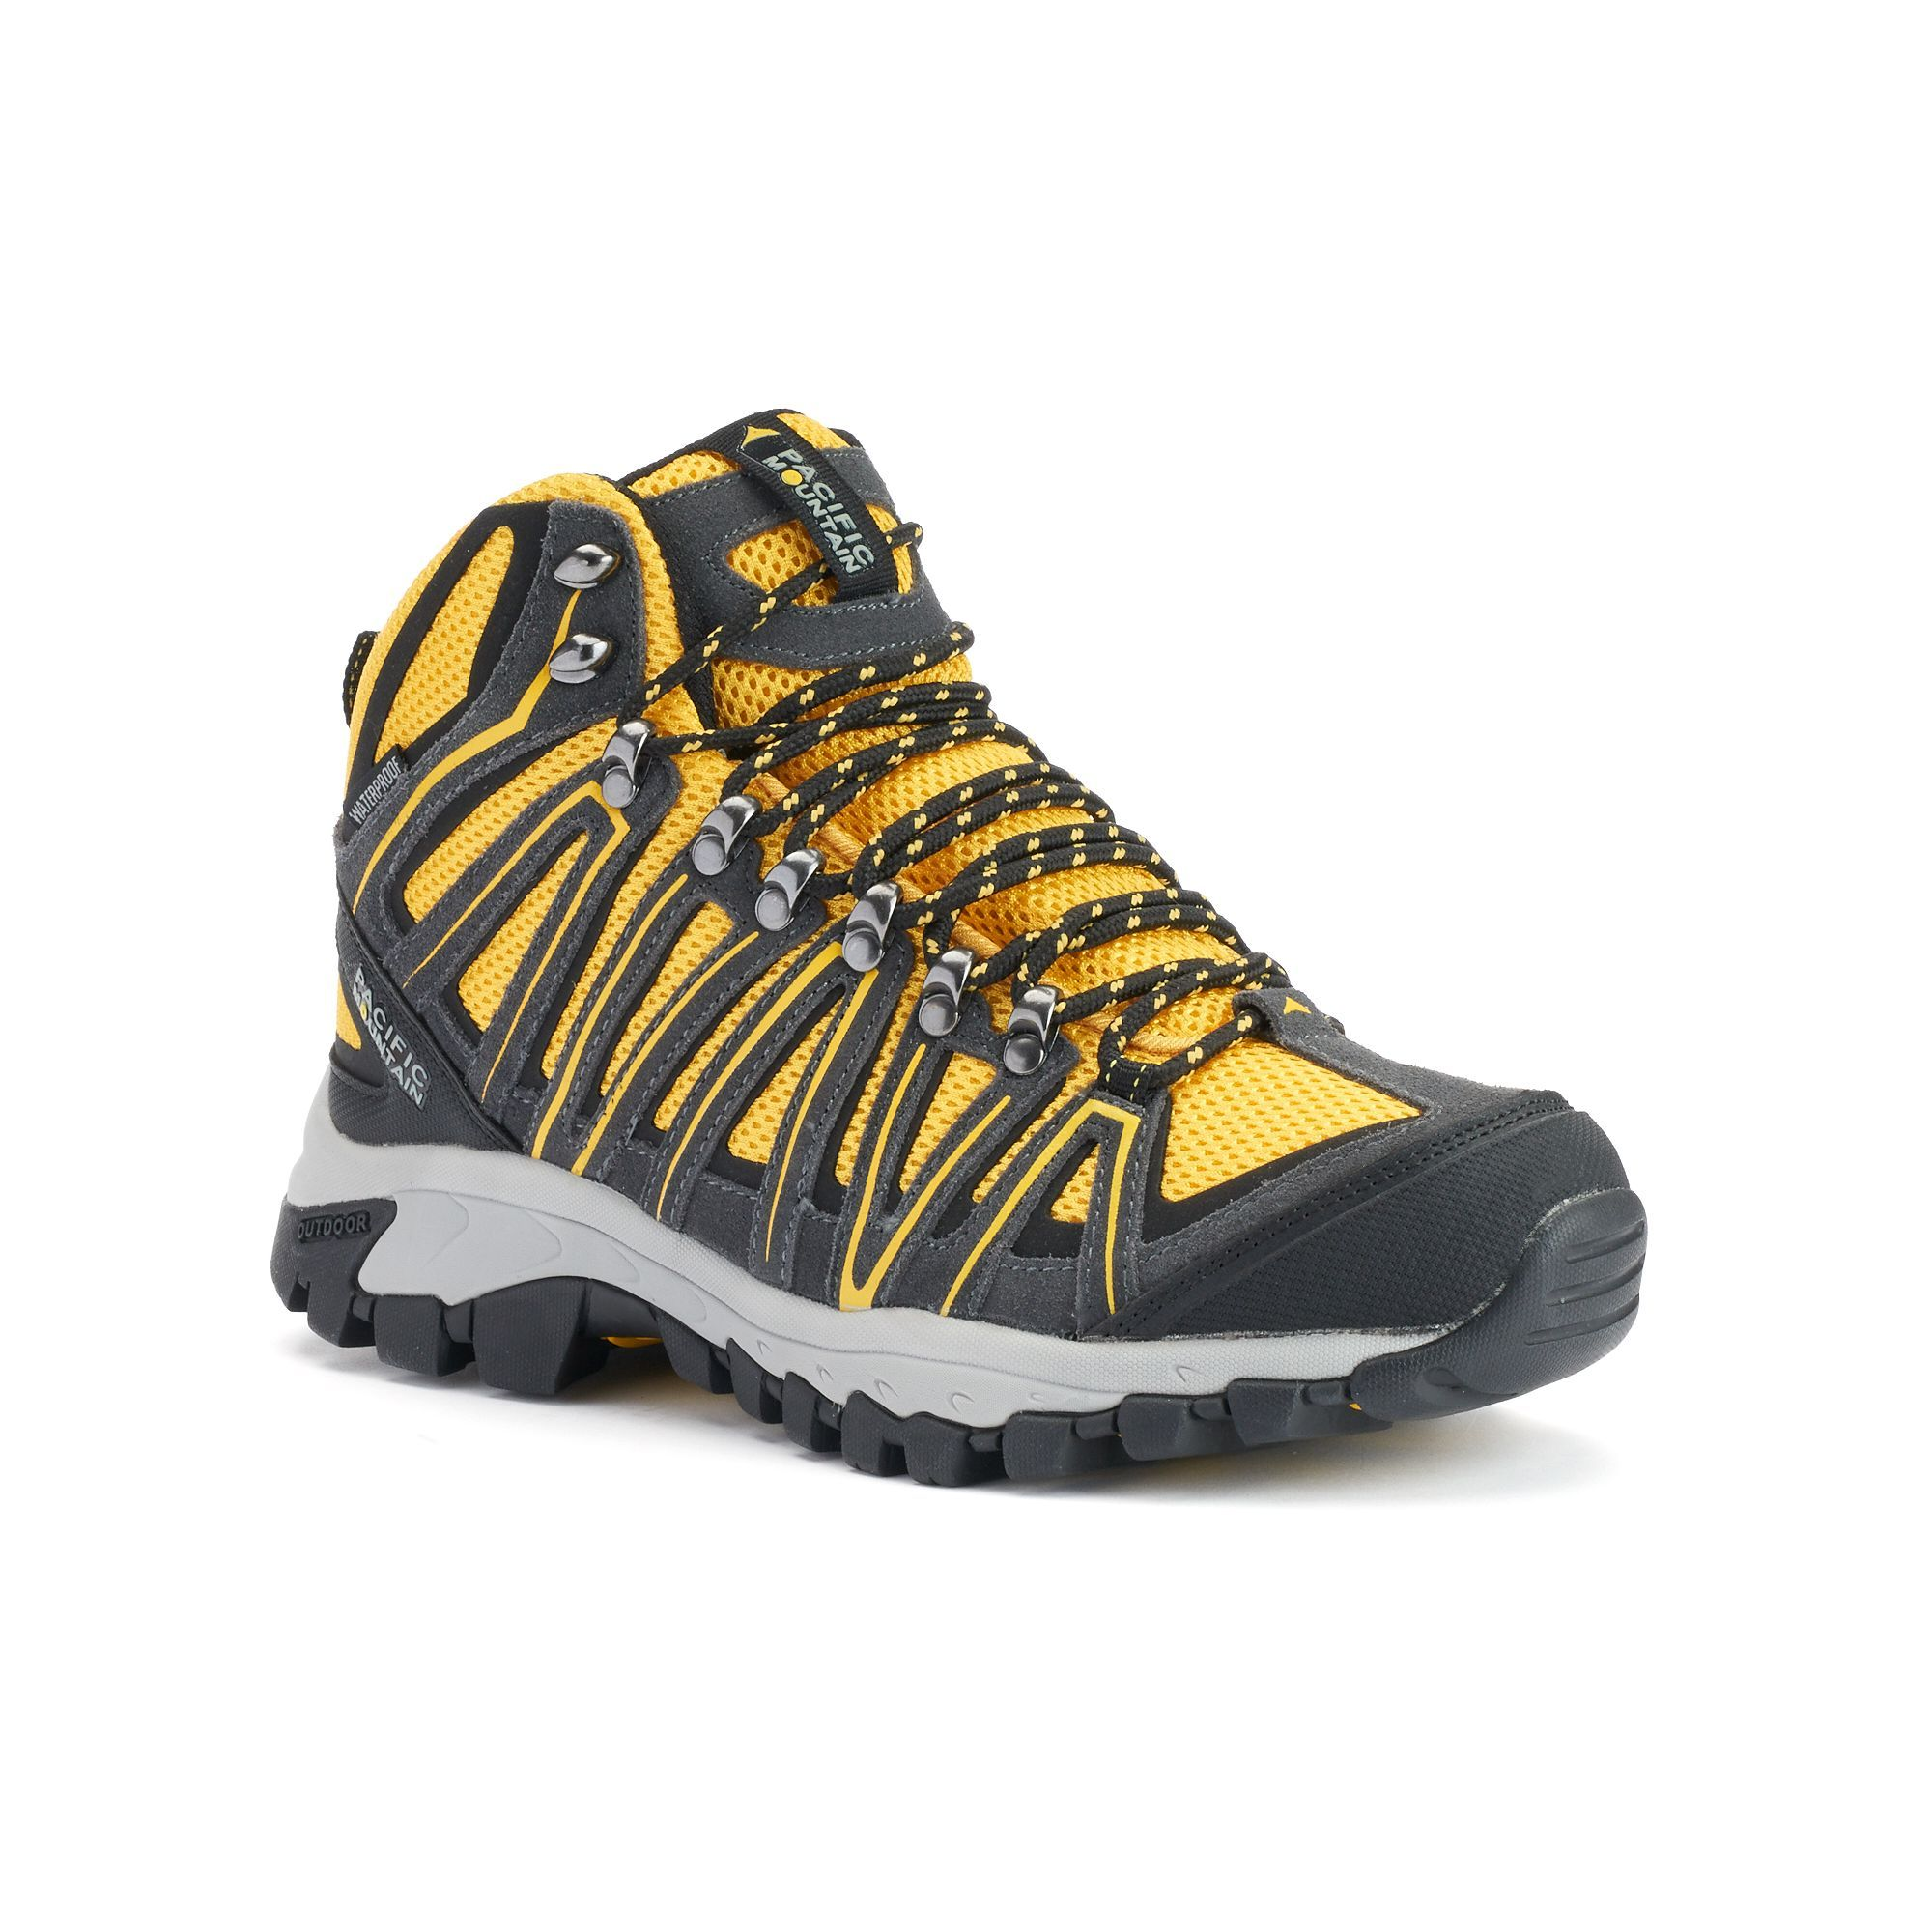 be2520dc9871 Pacific Mountain Crest Men s Waterproof Hiking Shoes